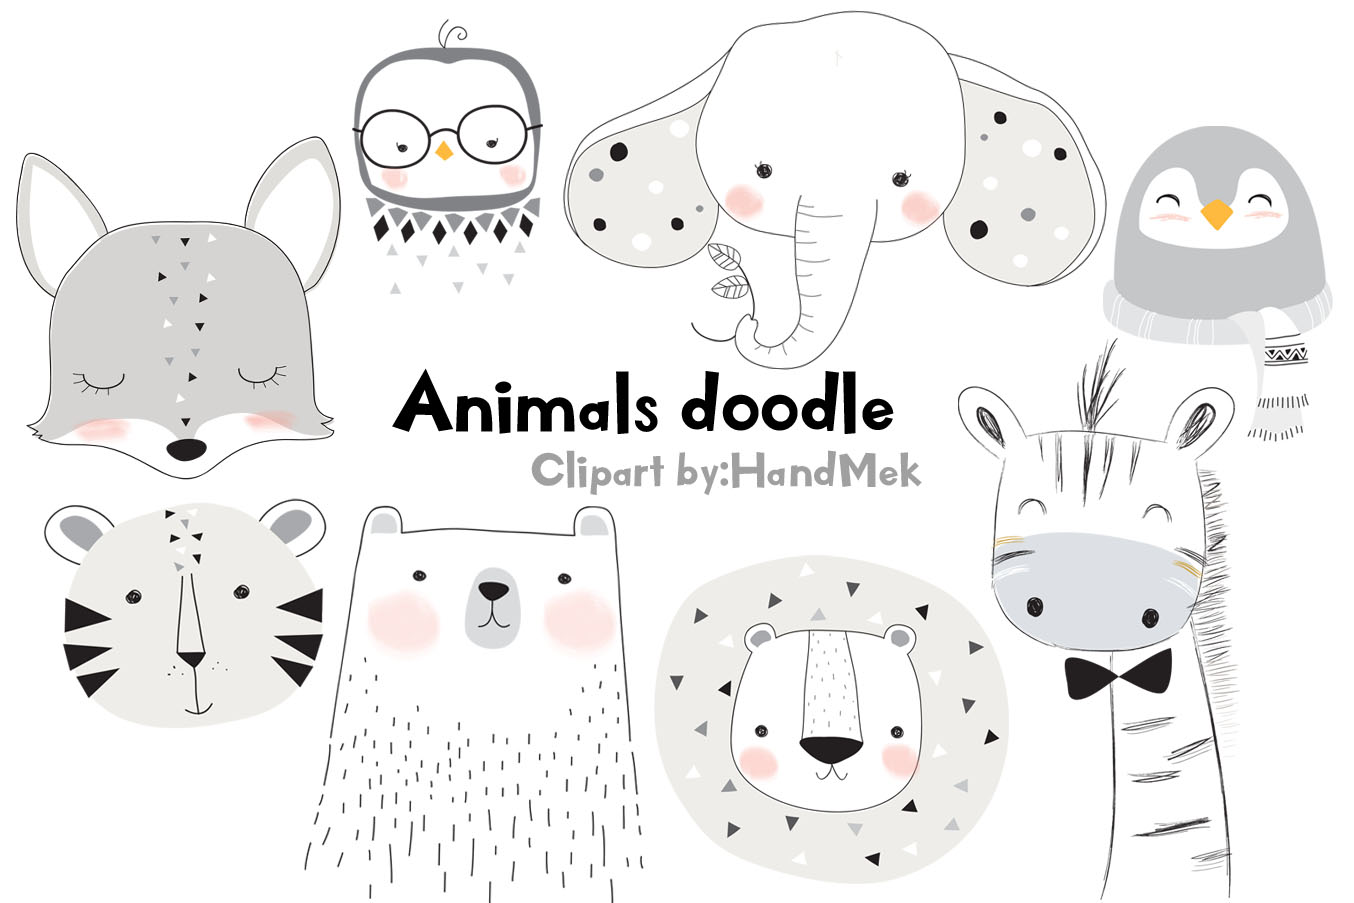 Animals doodle clipart. example image 1